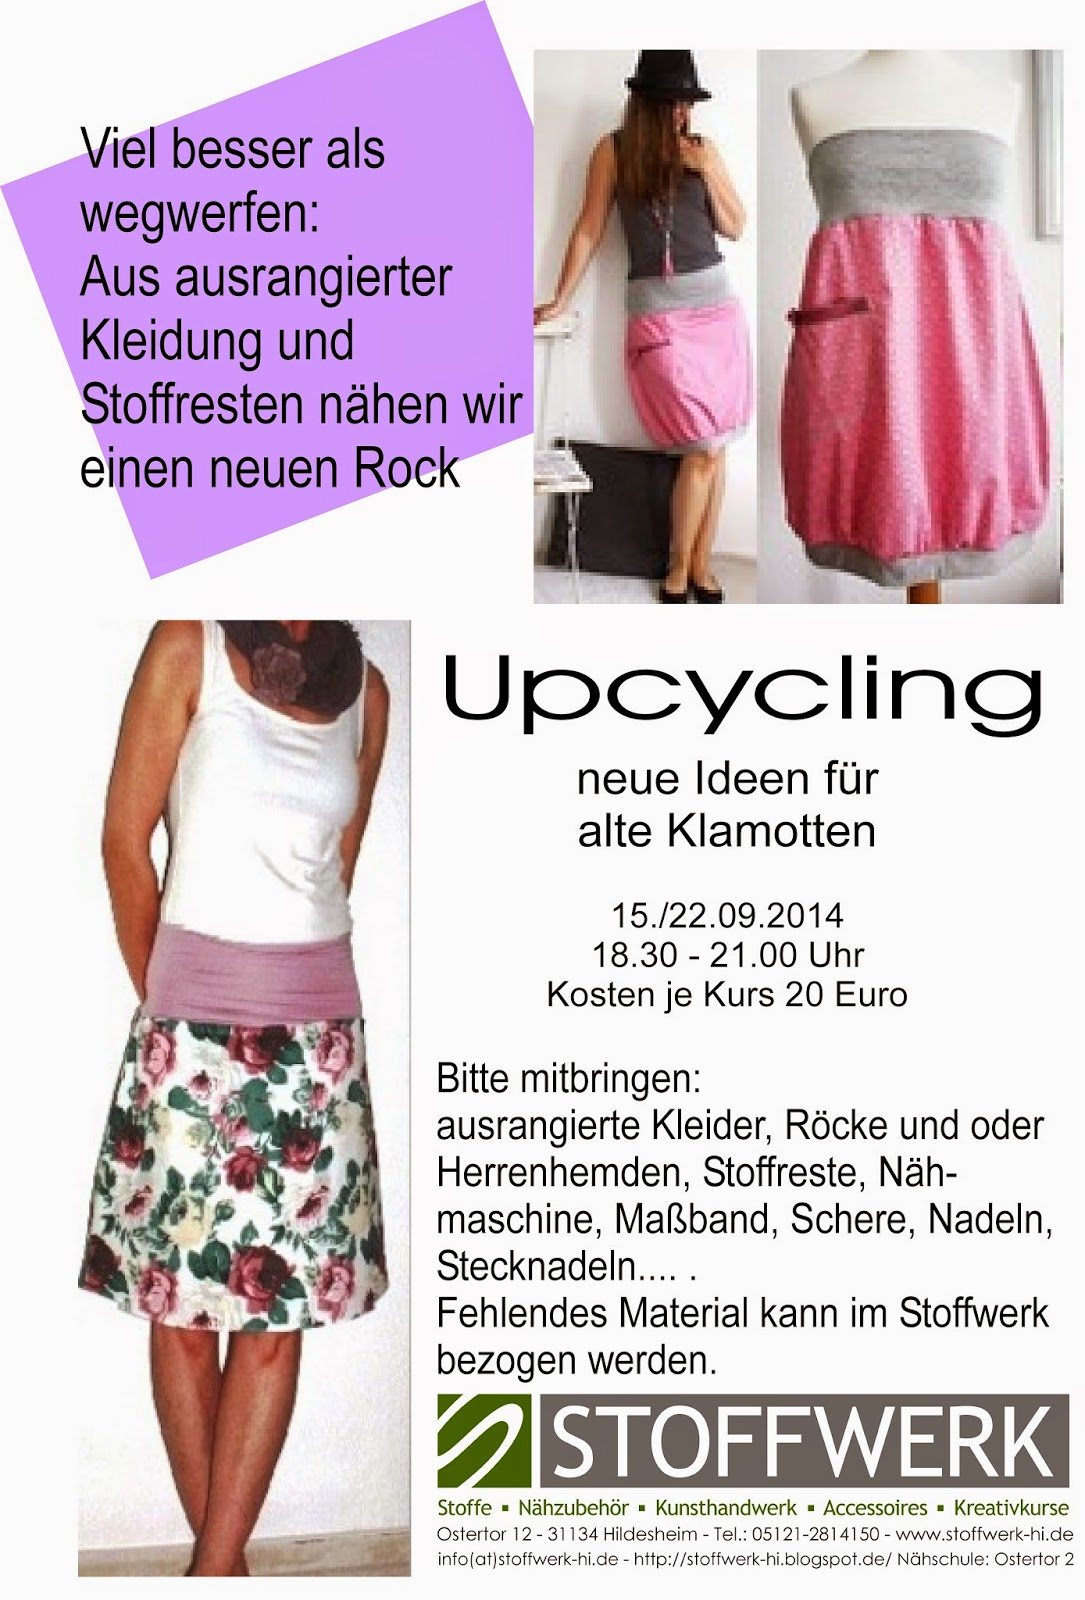 upcycling kleidung ideen 9 upcycling kleidung ideen aus alten t shirts mit anleitung pimp my. Black Bedroom Furniture Sets. Home Design Ideas